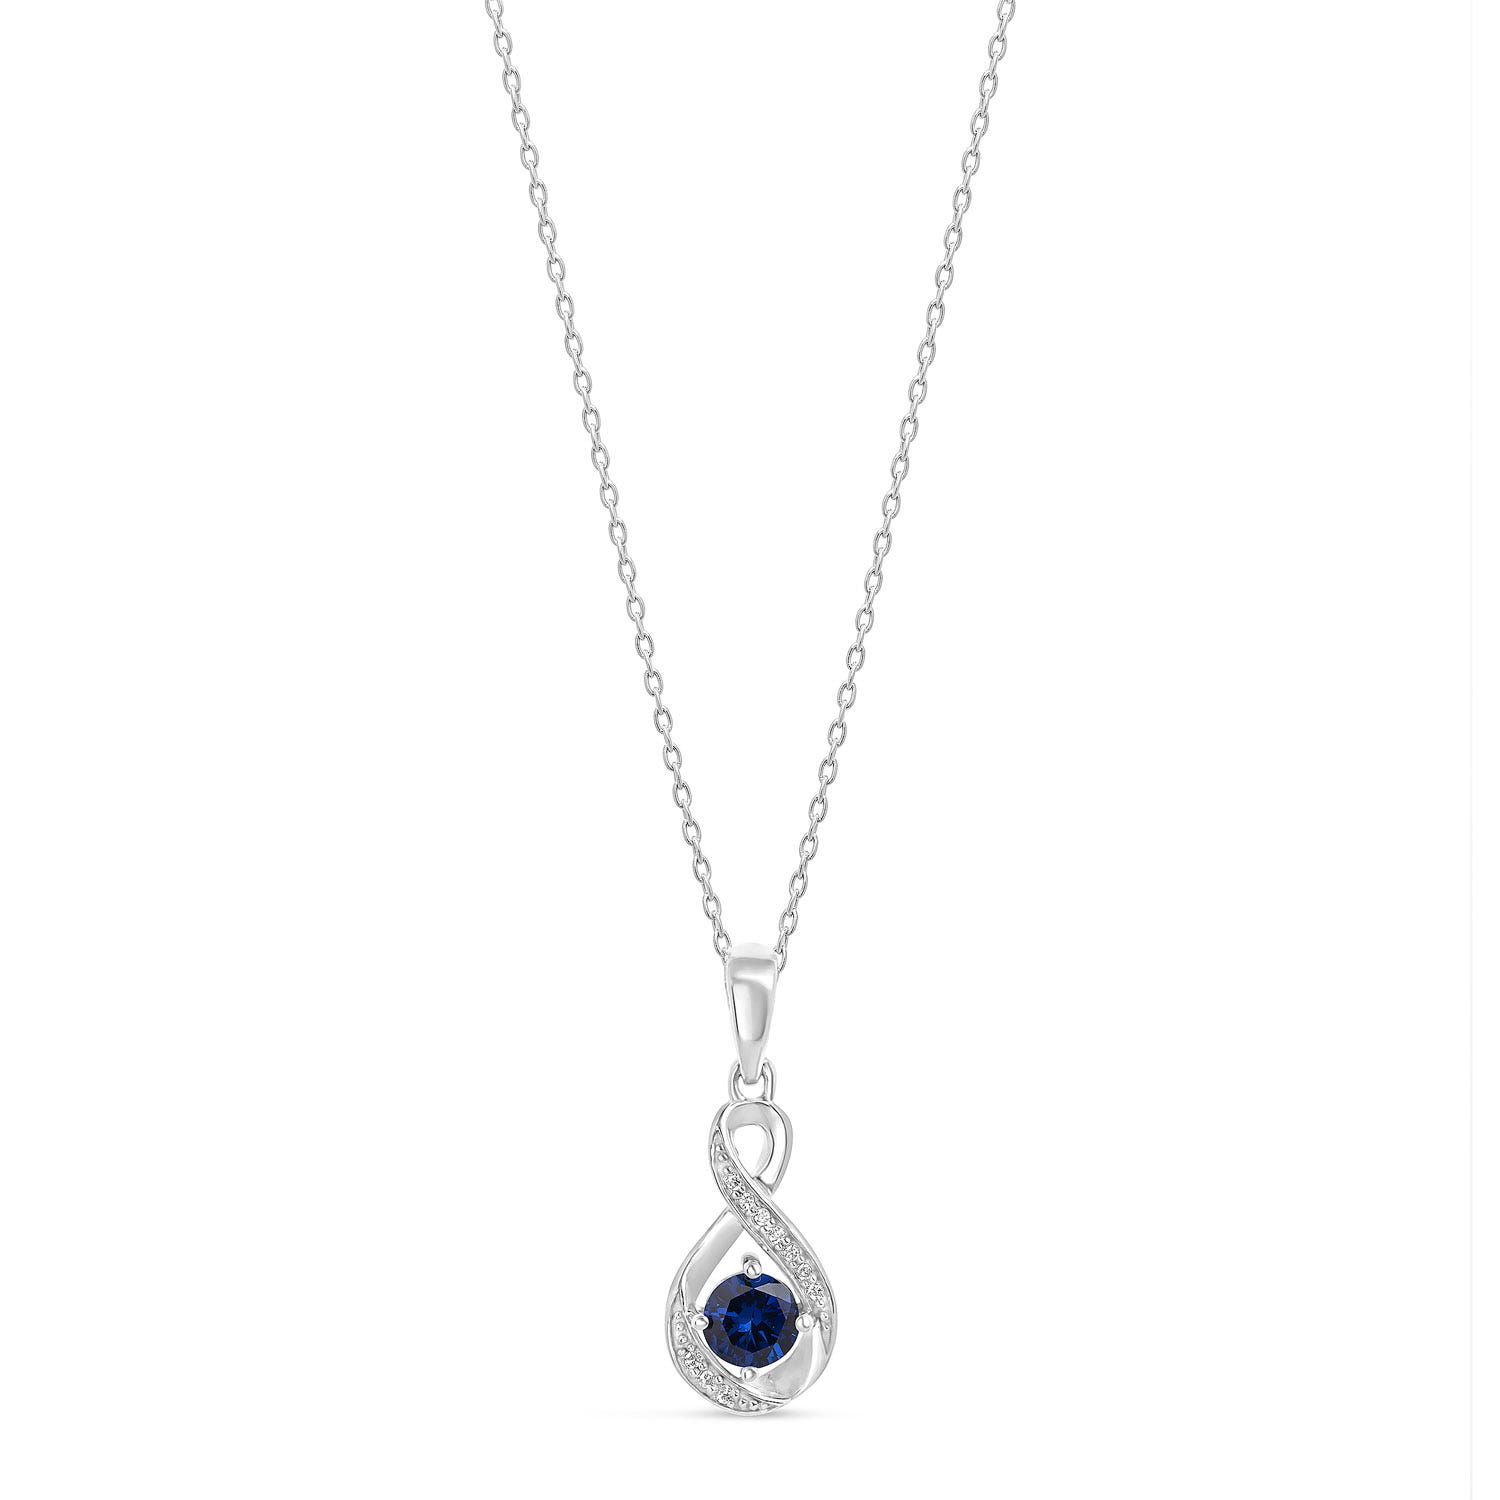 Sterling Silver and Cubic Zirconia September Birthstone Pendant